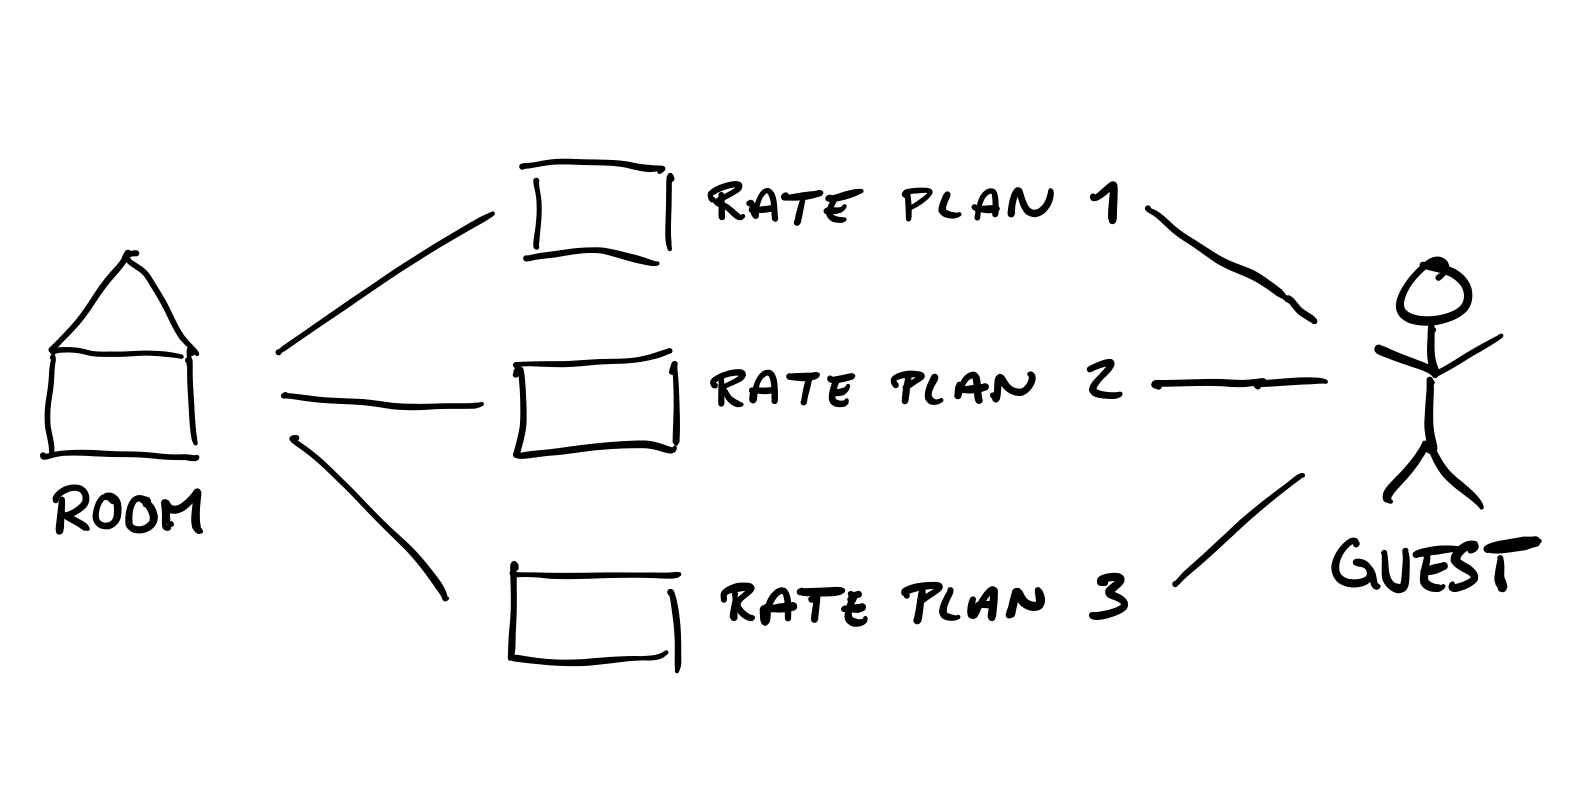 Picture of how a room type is sold through a rate plan